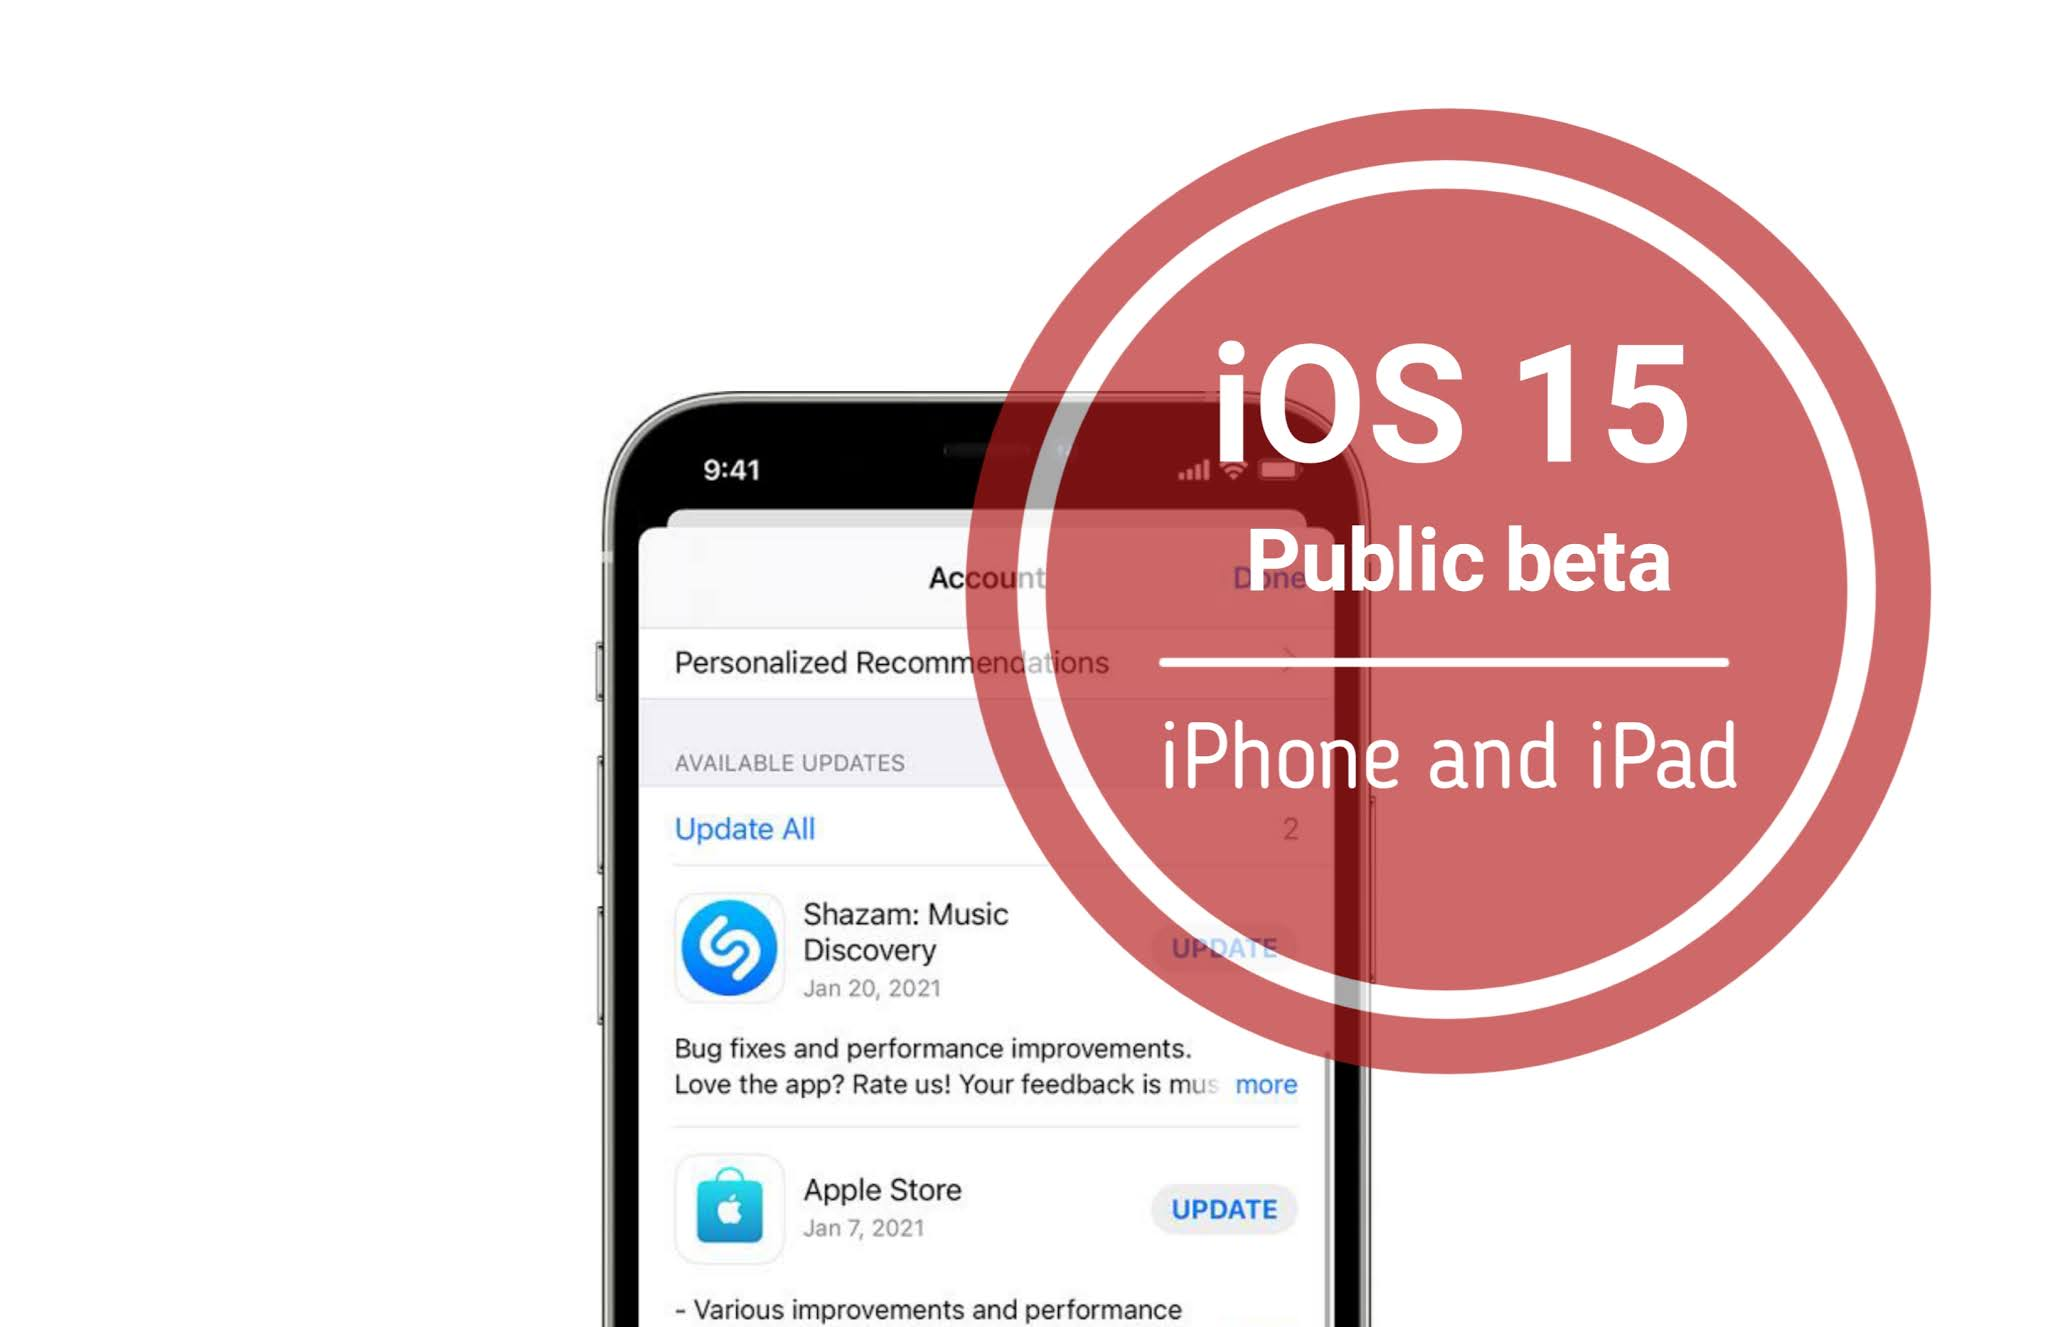 How To Install iOS 15 Public Beta Version On Your iPhone